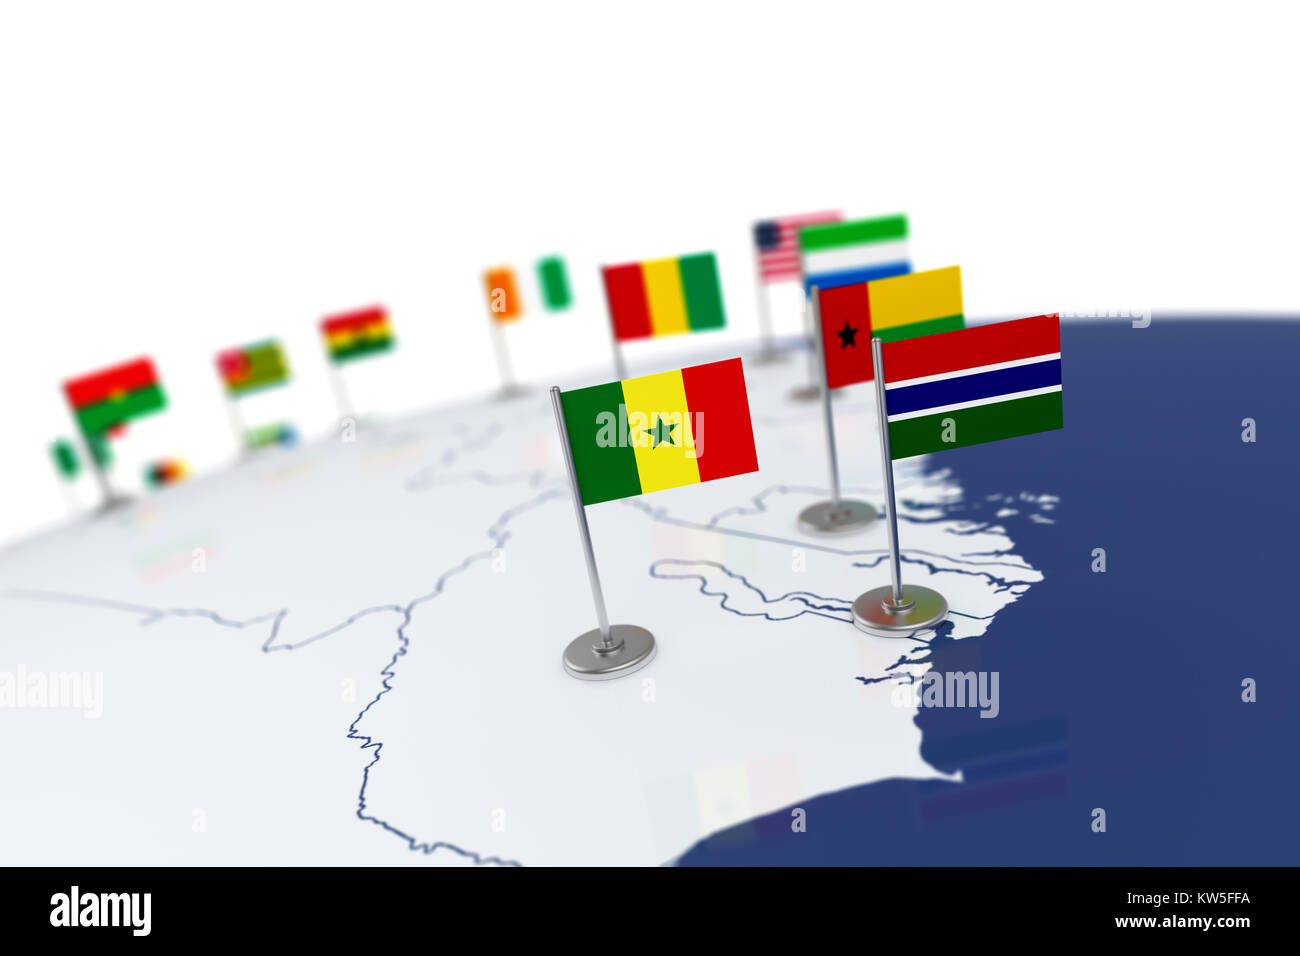 Senegal flag country flag with chrome flagpole on the world map senegal flag country flag with chrome flagpole on the world map with neighbors countries borders 3d illustration rendering flag gumiabroncs Choice Image